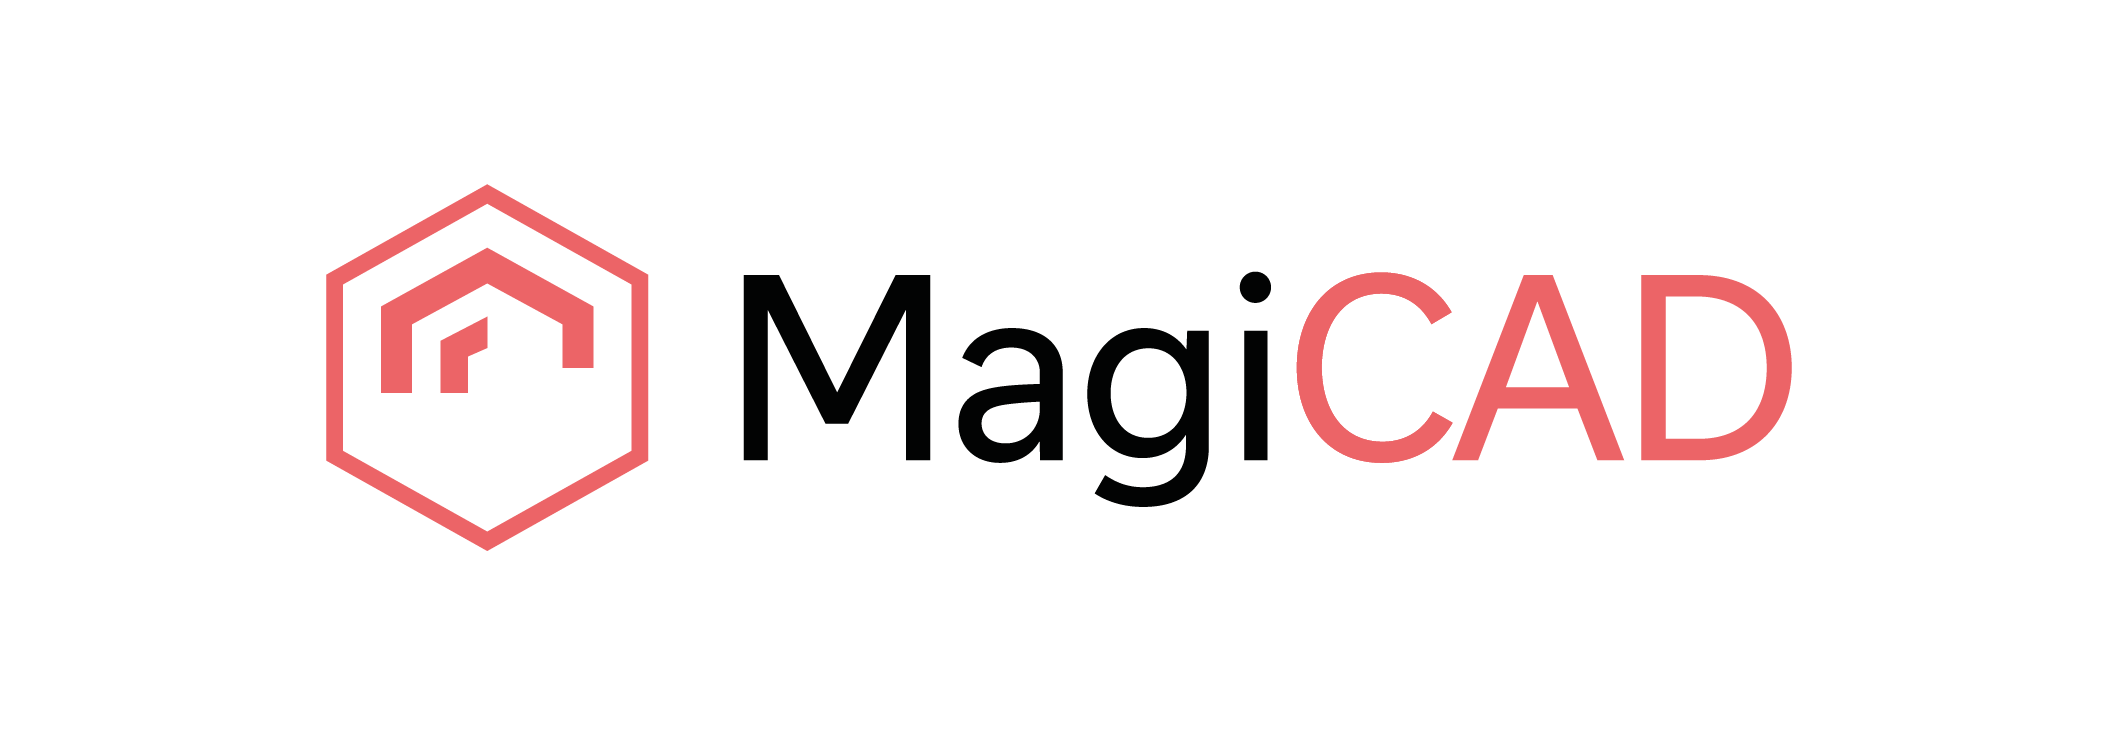 MagiCAD for Revit and AutoCAD